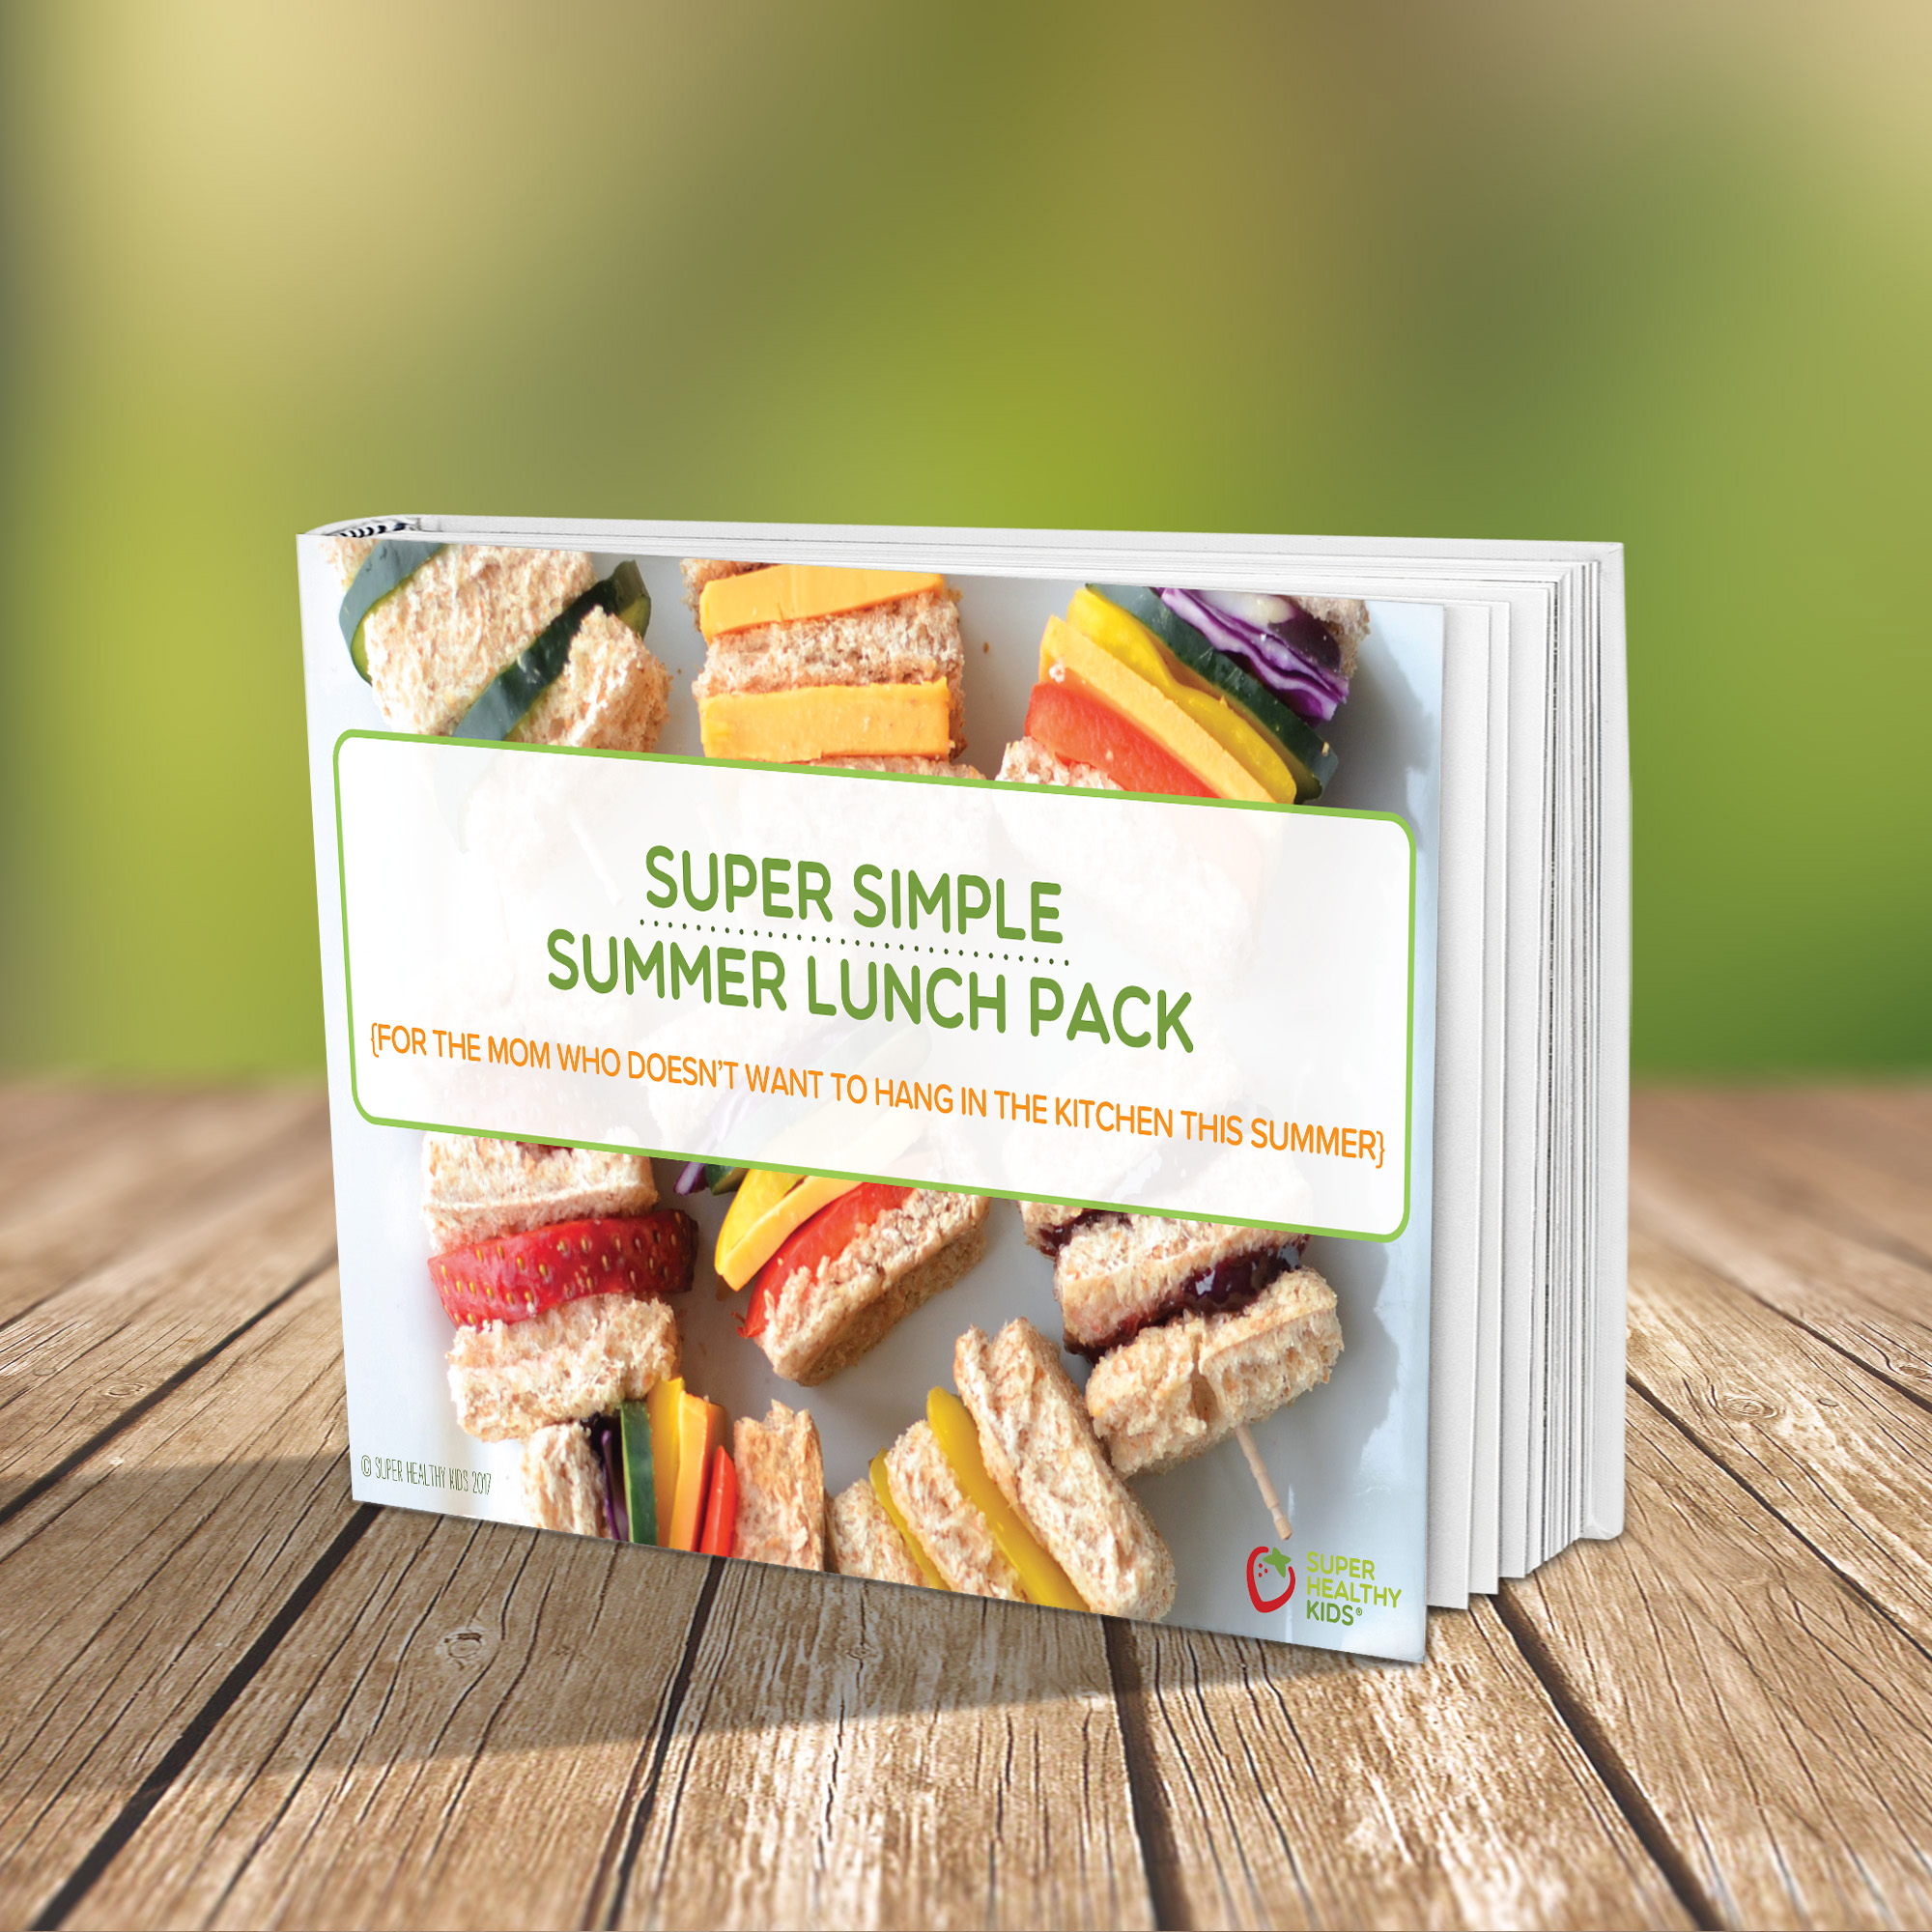 Super Simple Summer Lunch Pack | Super Healthy Kids